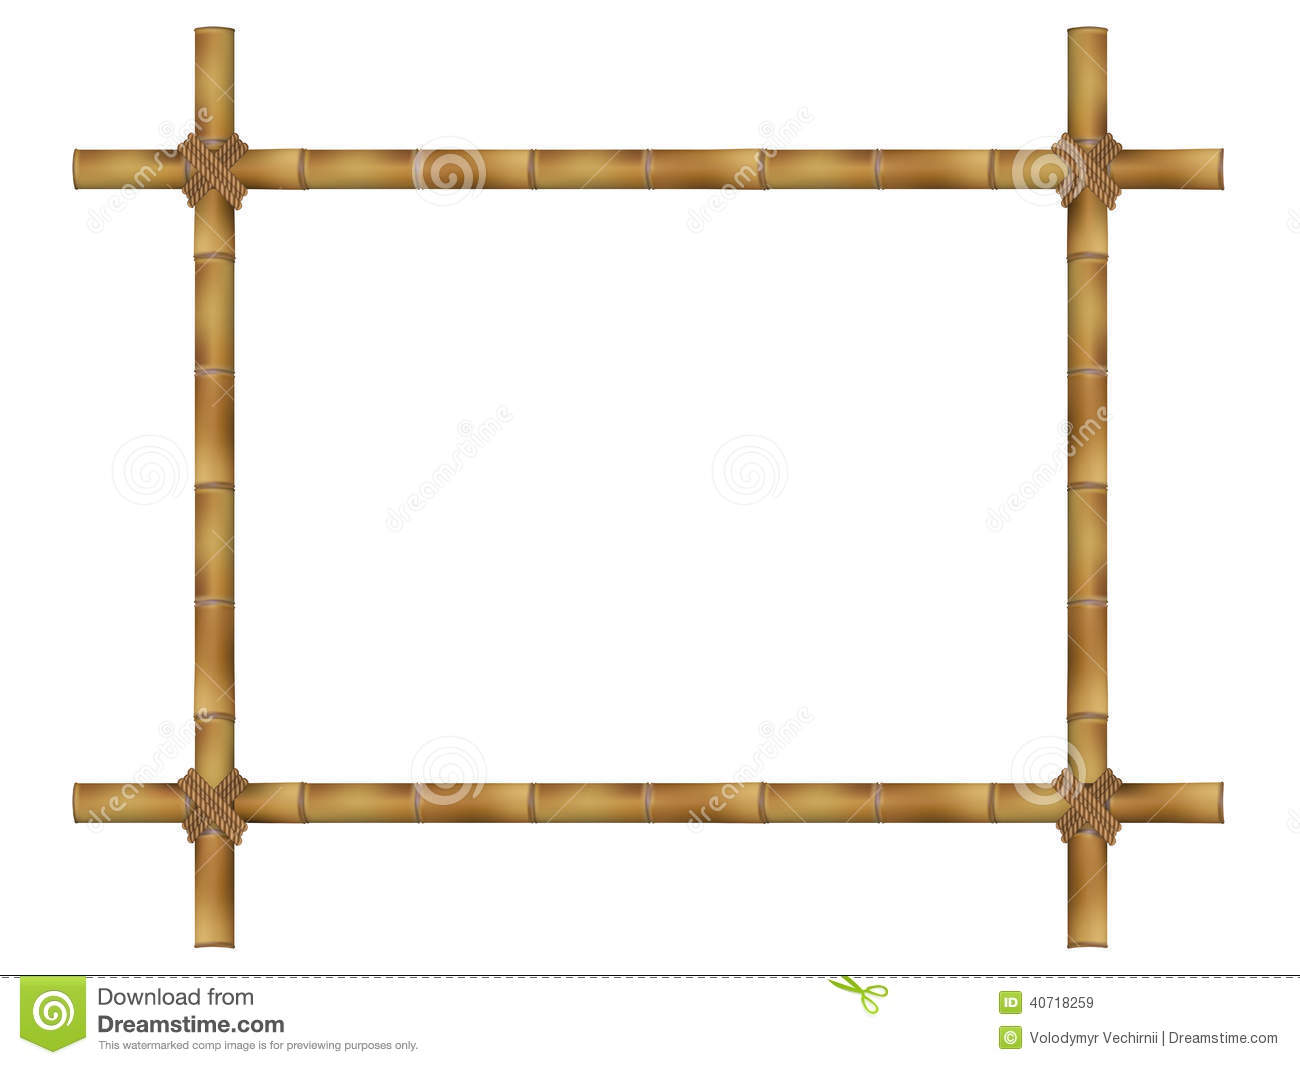 a2e1491c5396 Wooden Frame Of Old Bamboo Sticks. Stock Vector - Illustration of ...